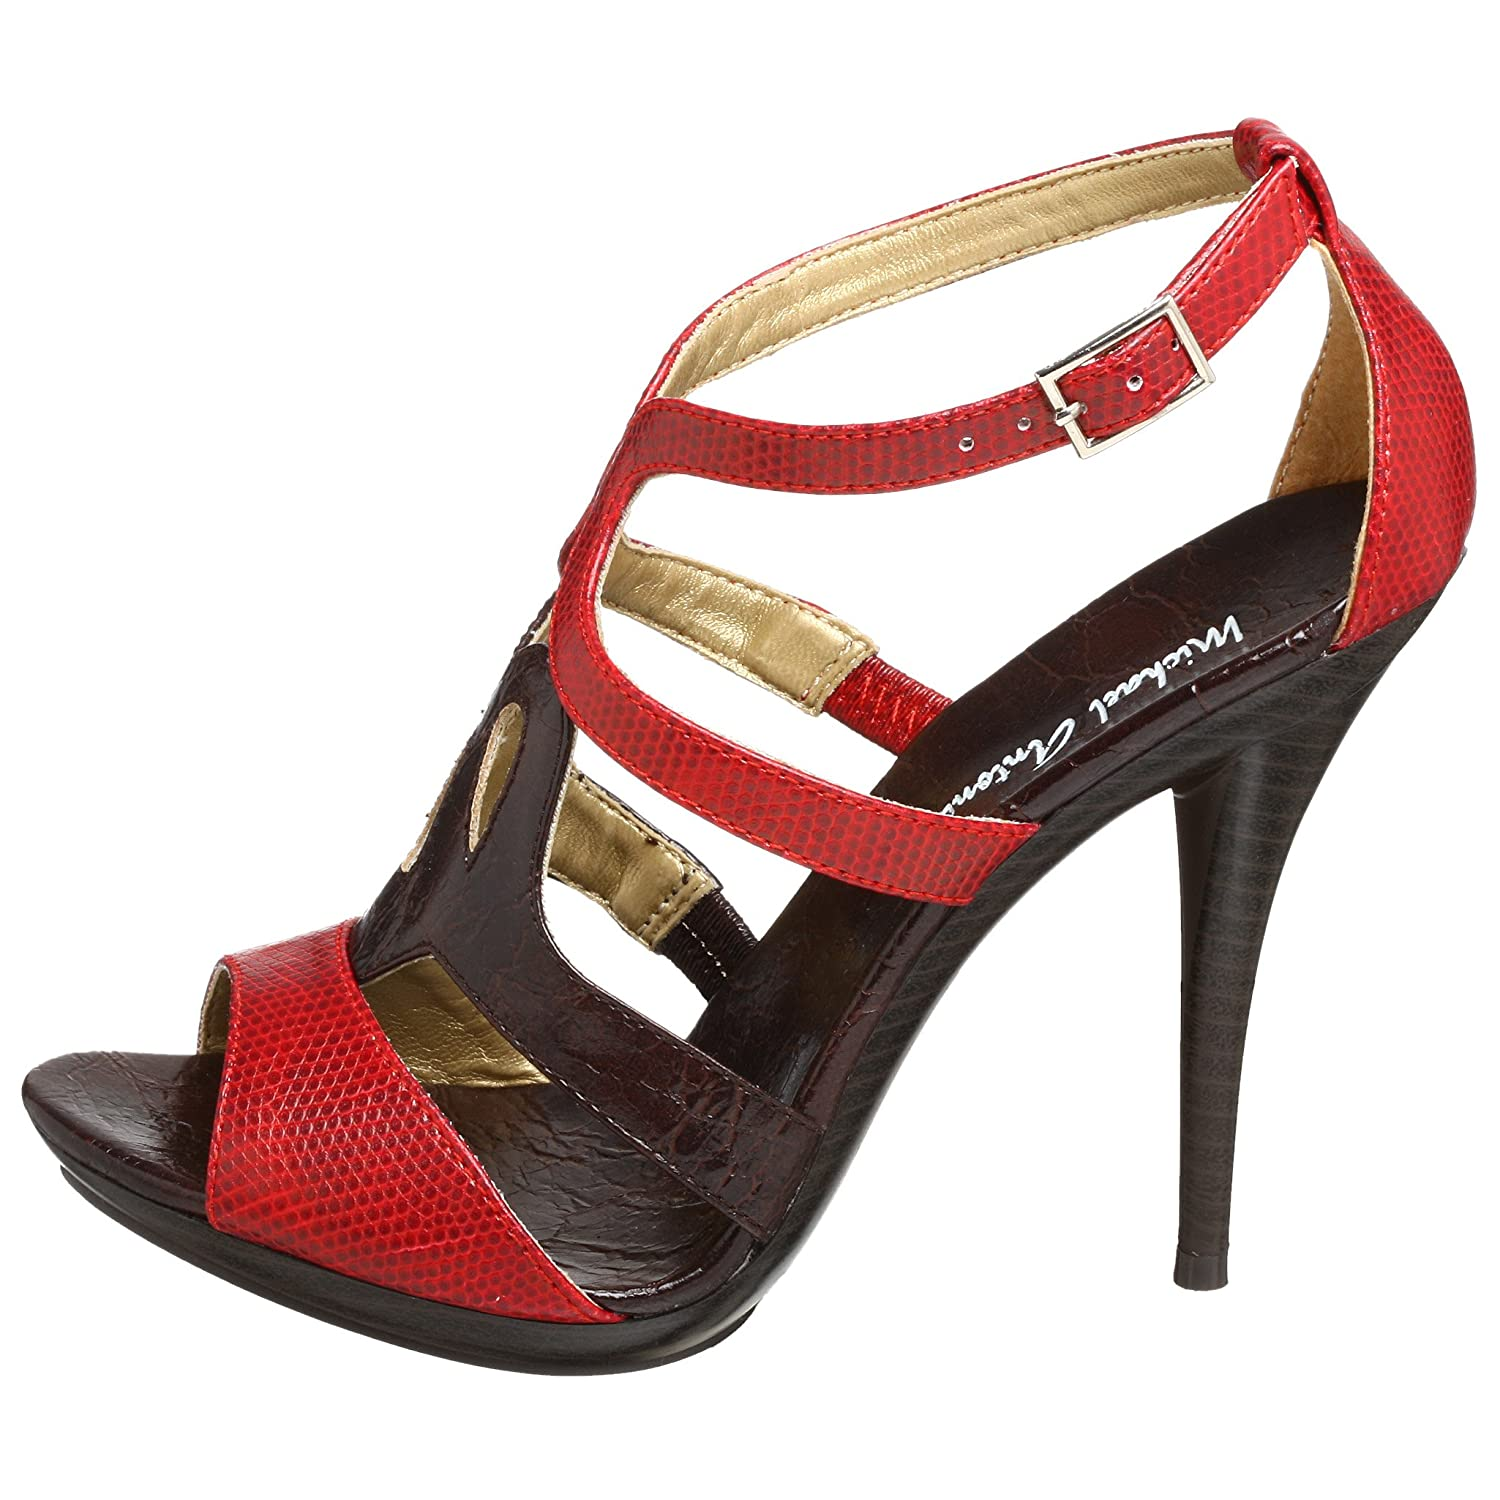 Michael Antonio Elaine Dress Sandal from endless.com